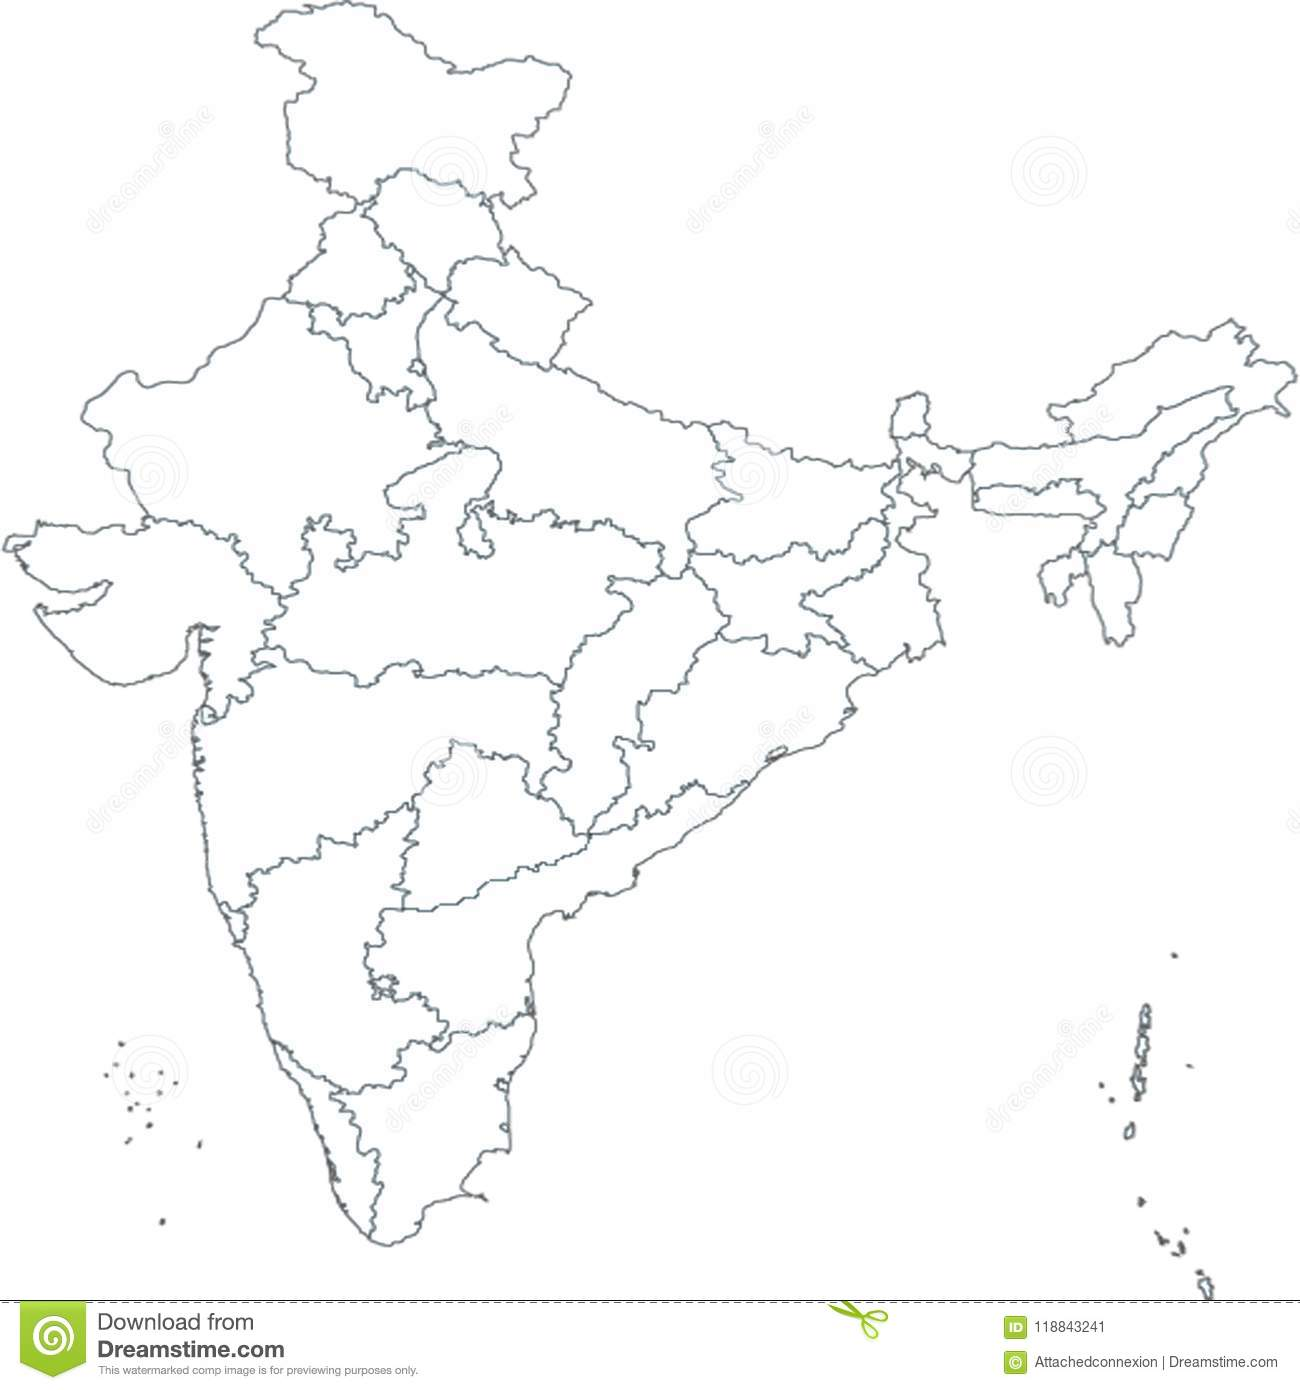 India Map With All States.Map Of India Asia With All States And Country Boundary Stock